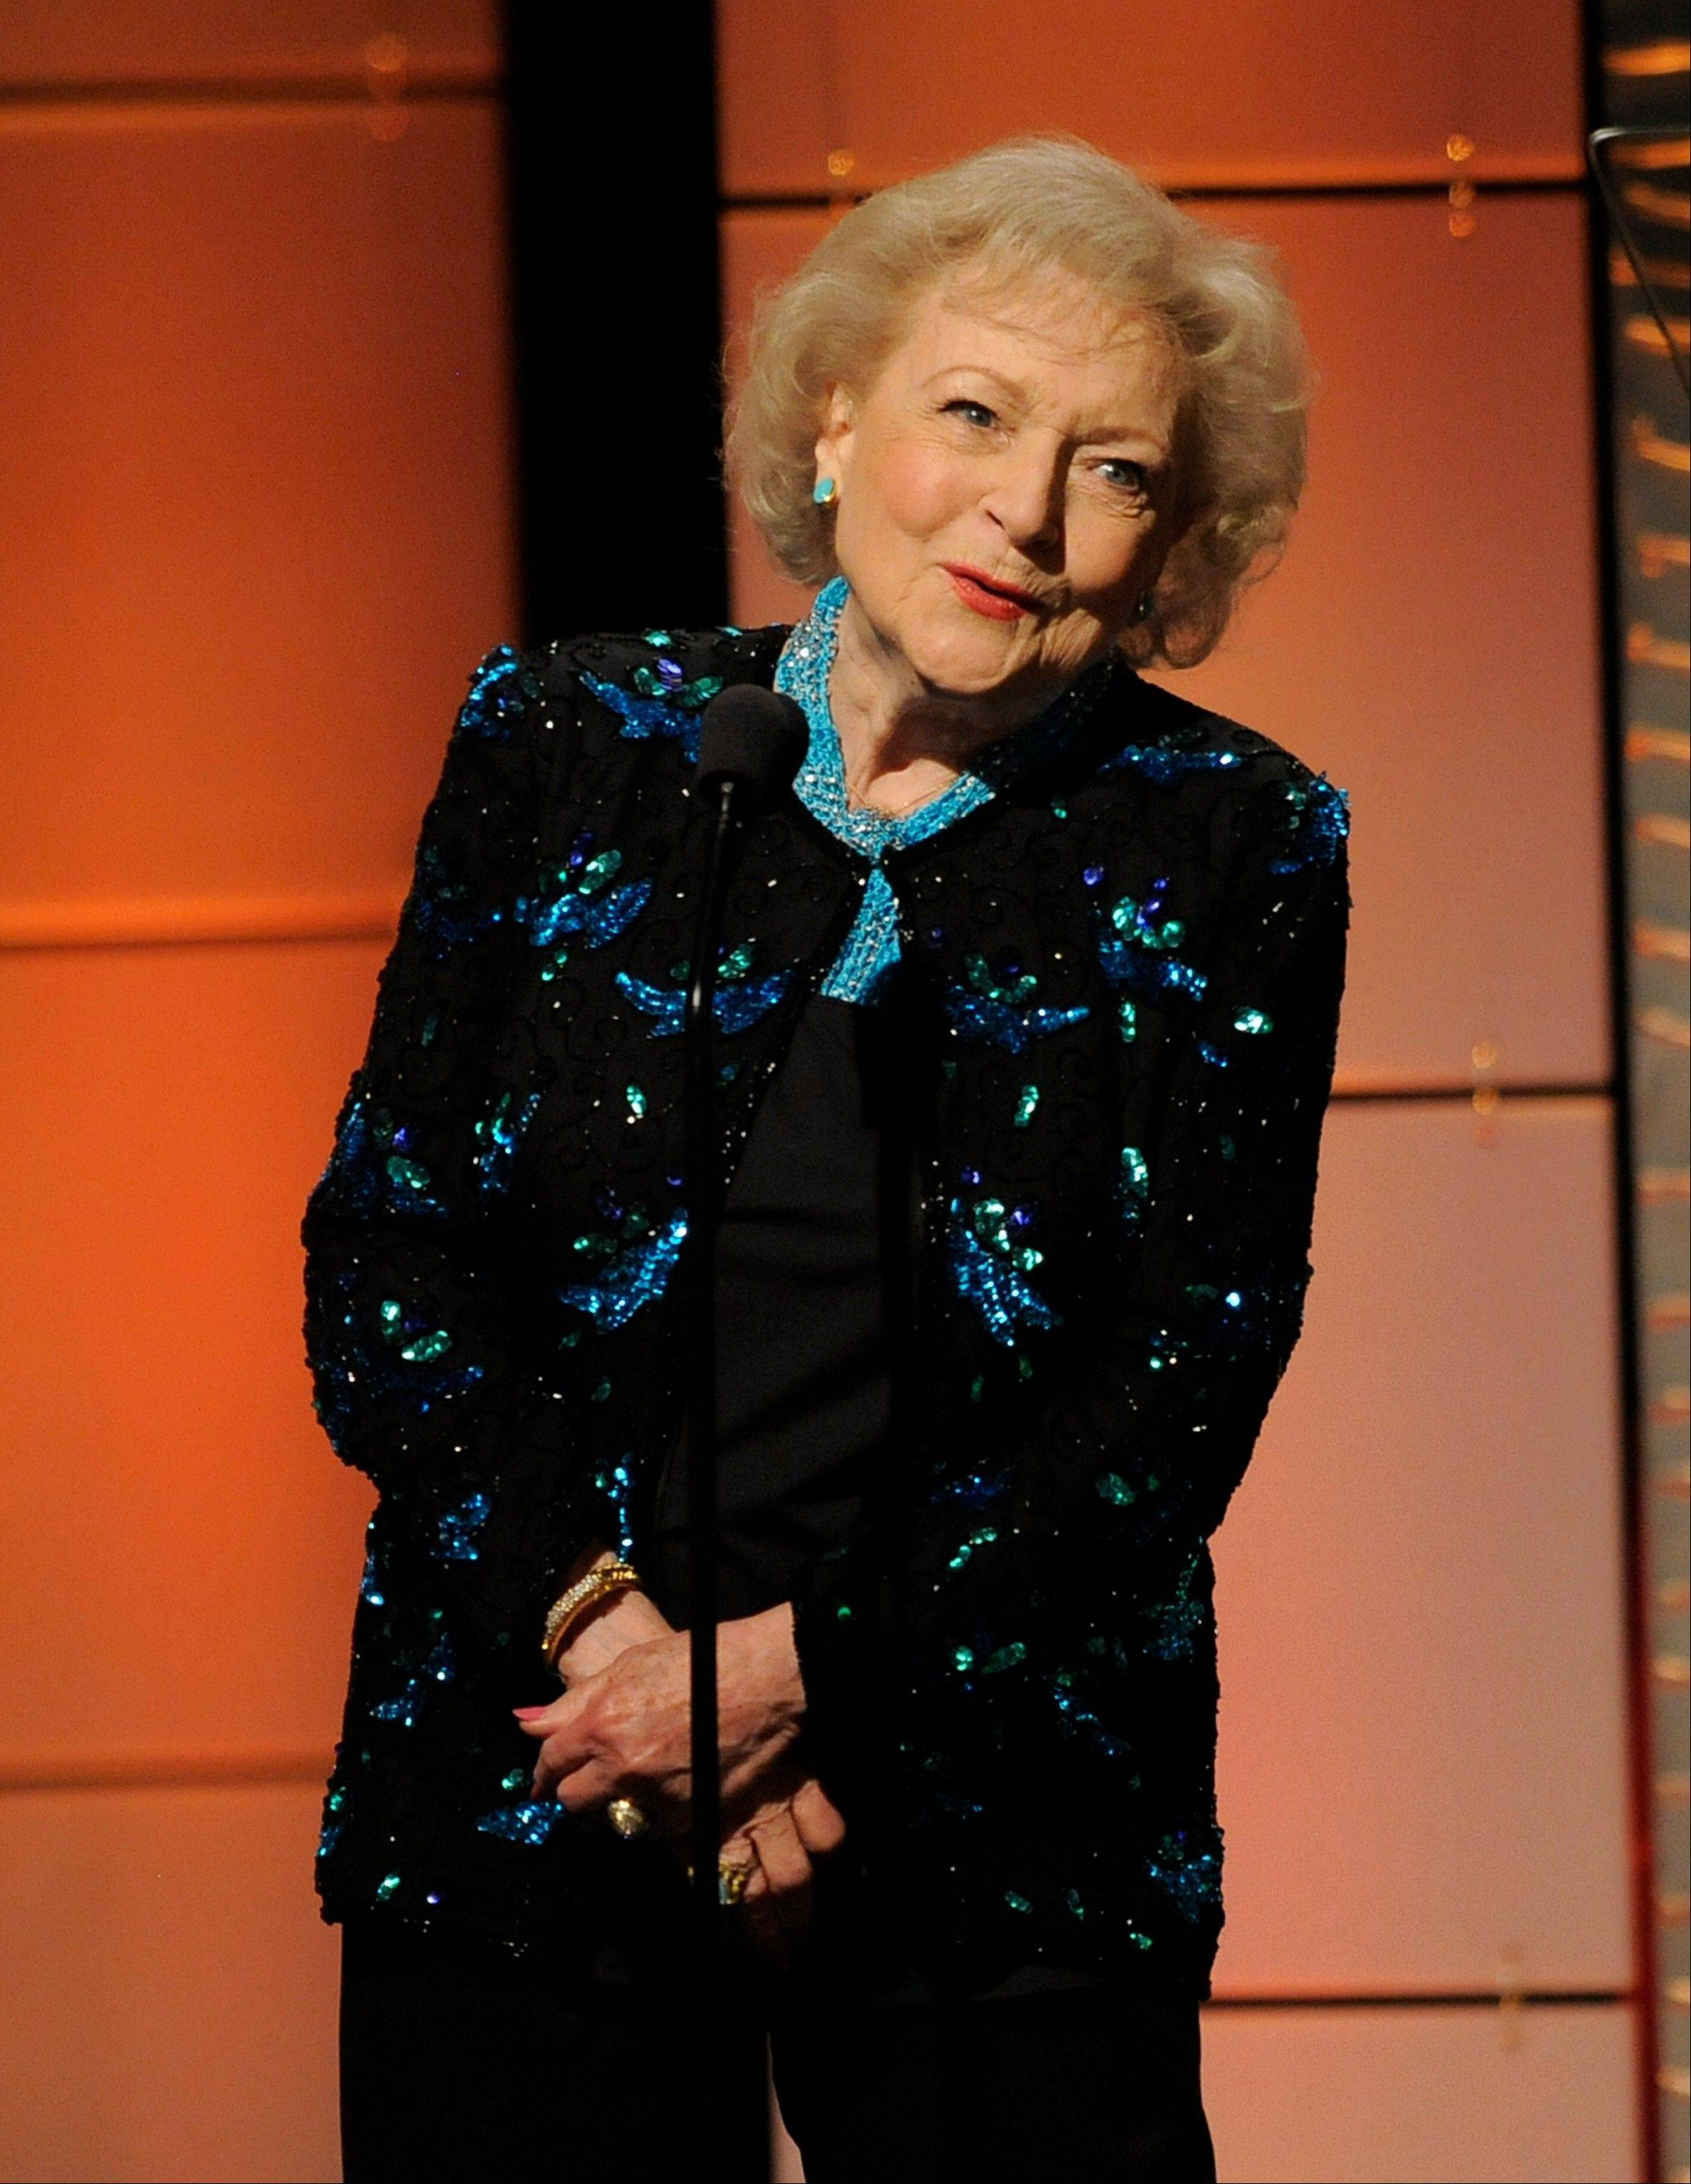 Betty White presents the lifetime achievement award at the 40th Annual Daytime Emmy Awards on Sunday, June 16, 2013, in Beverly Hills, Calif.